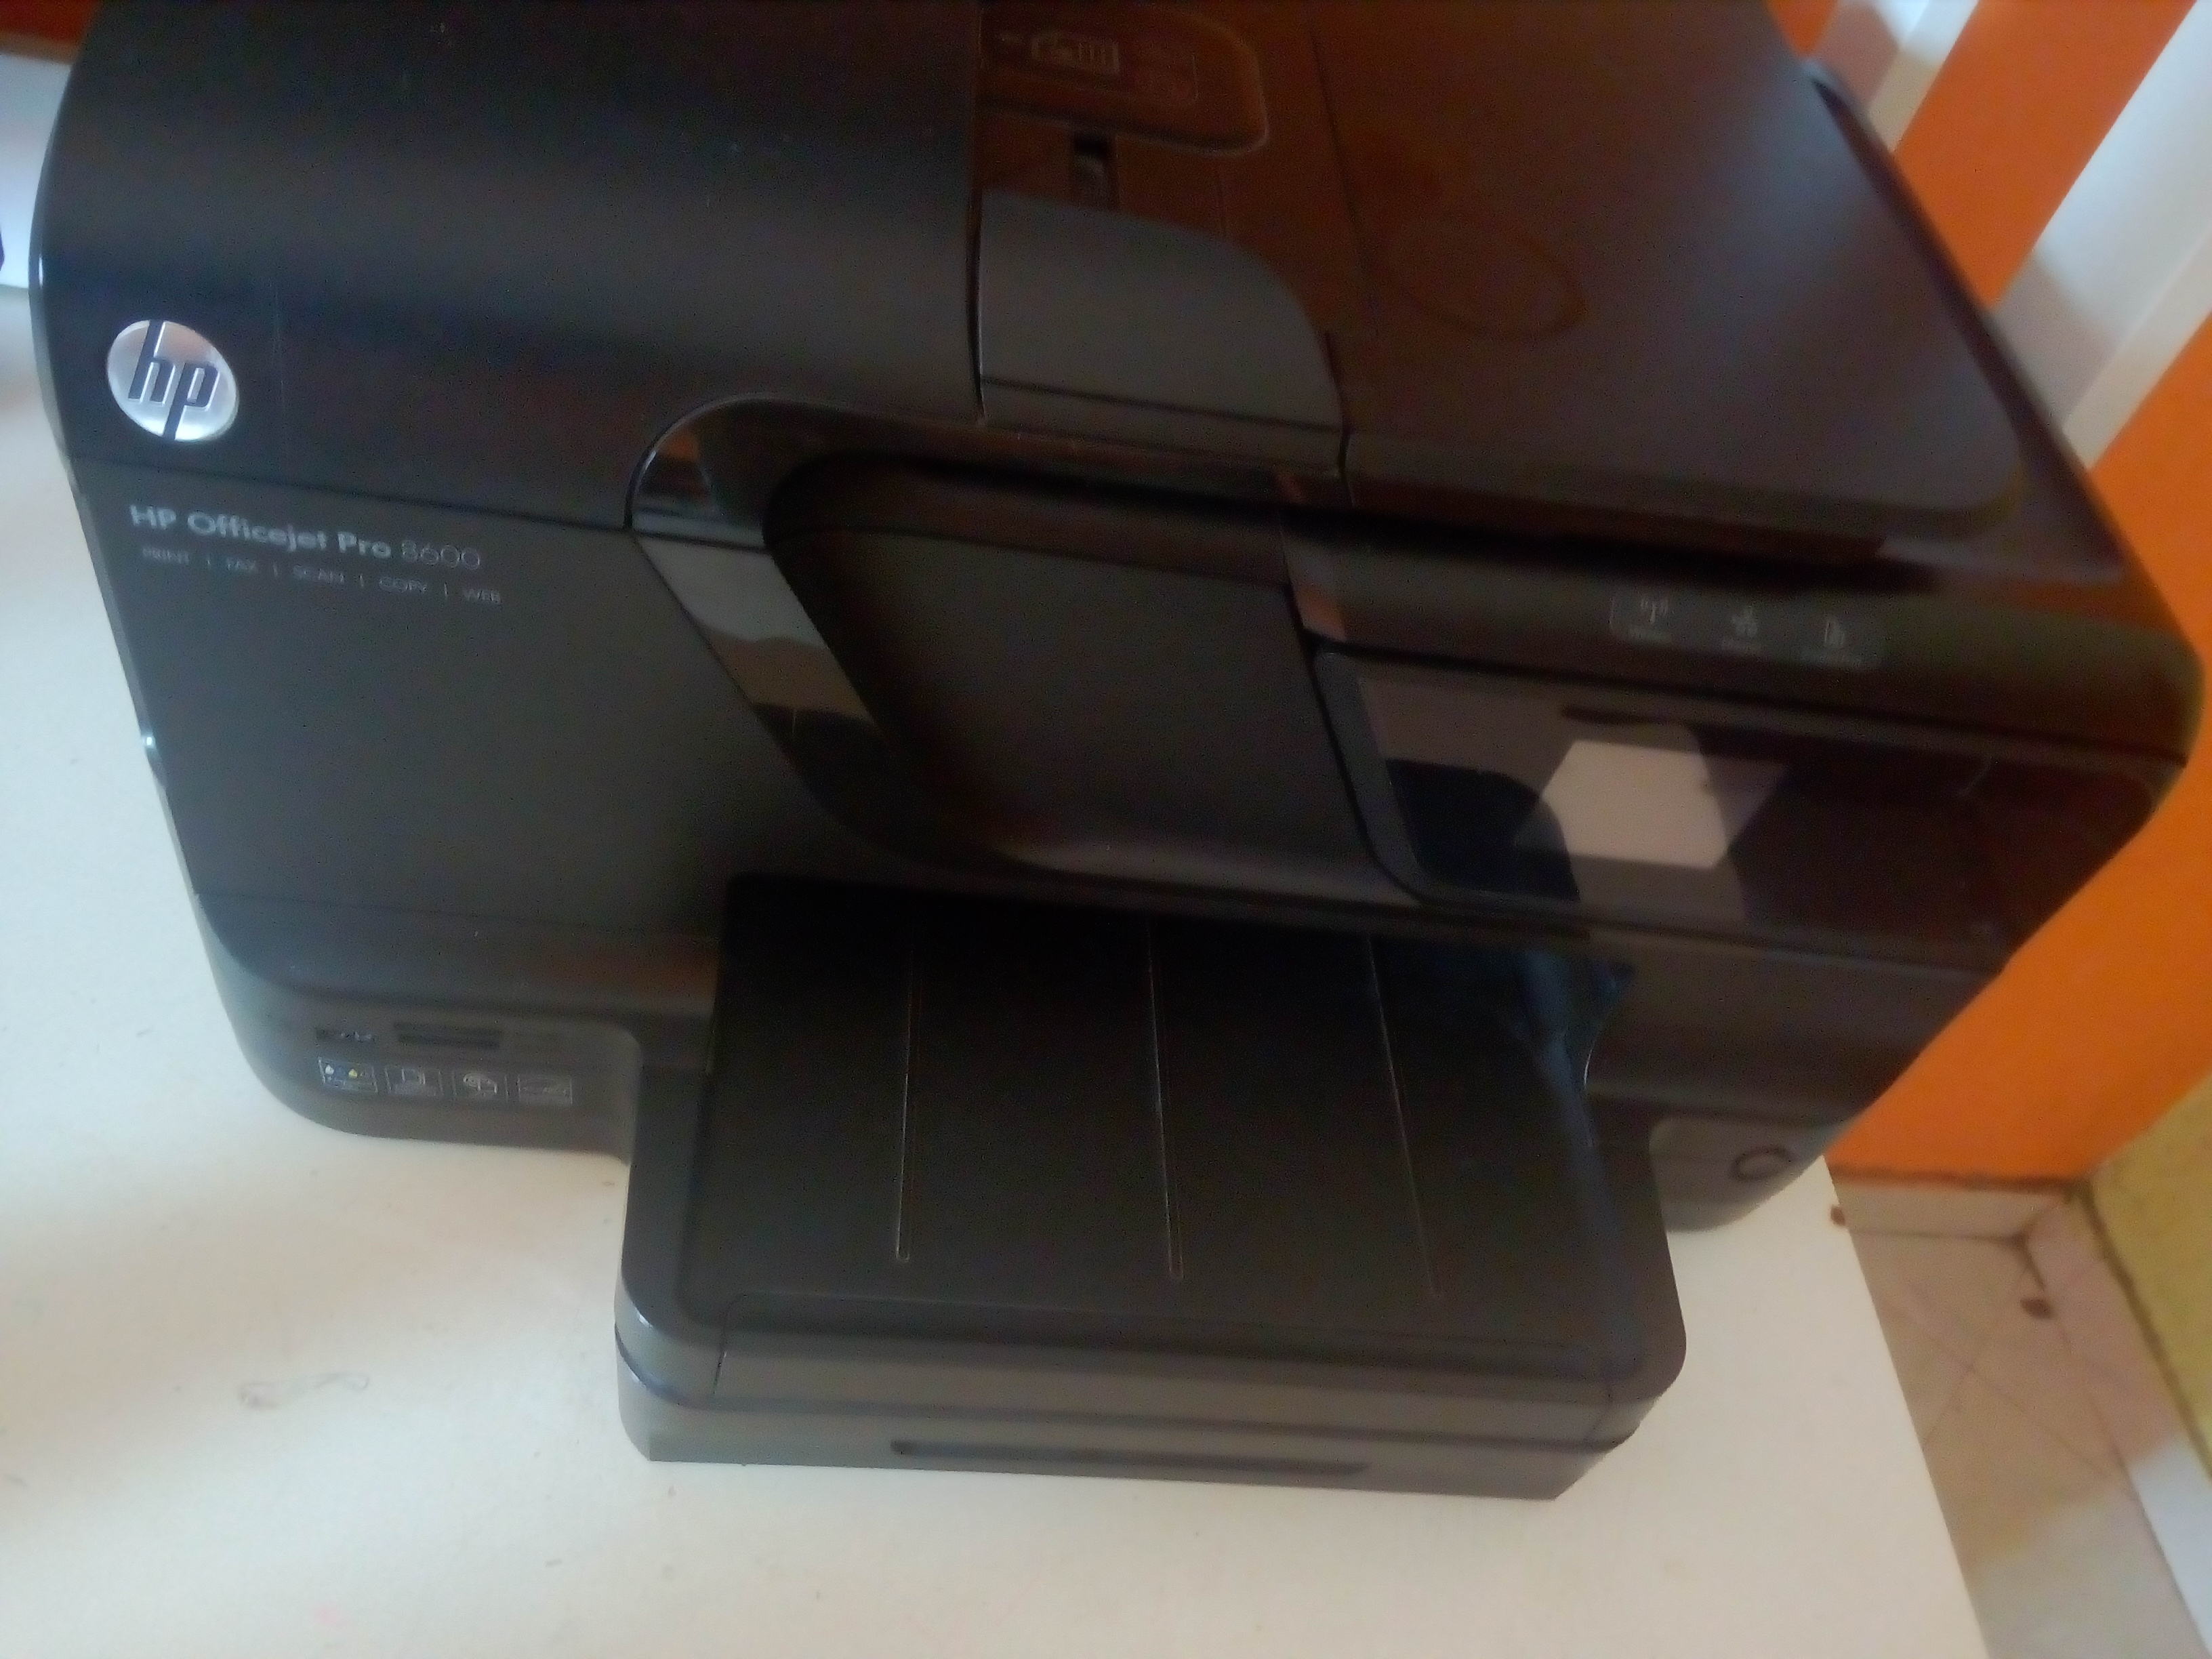 Vendo impressora HP Officejet 8600